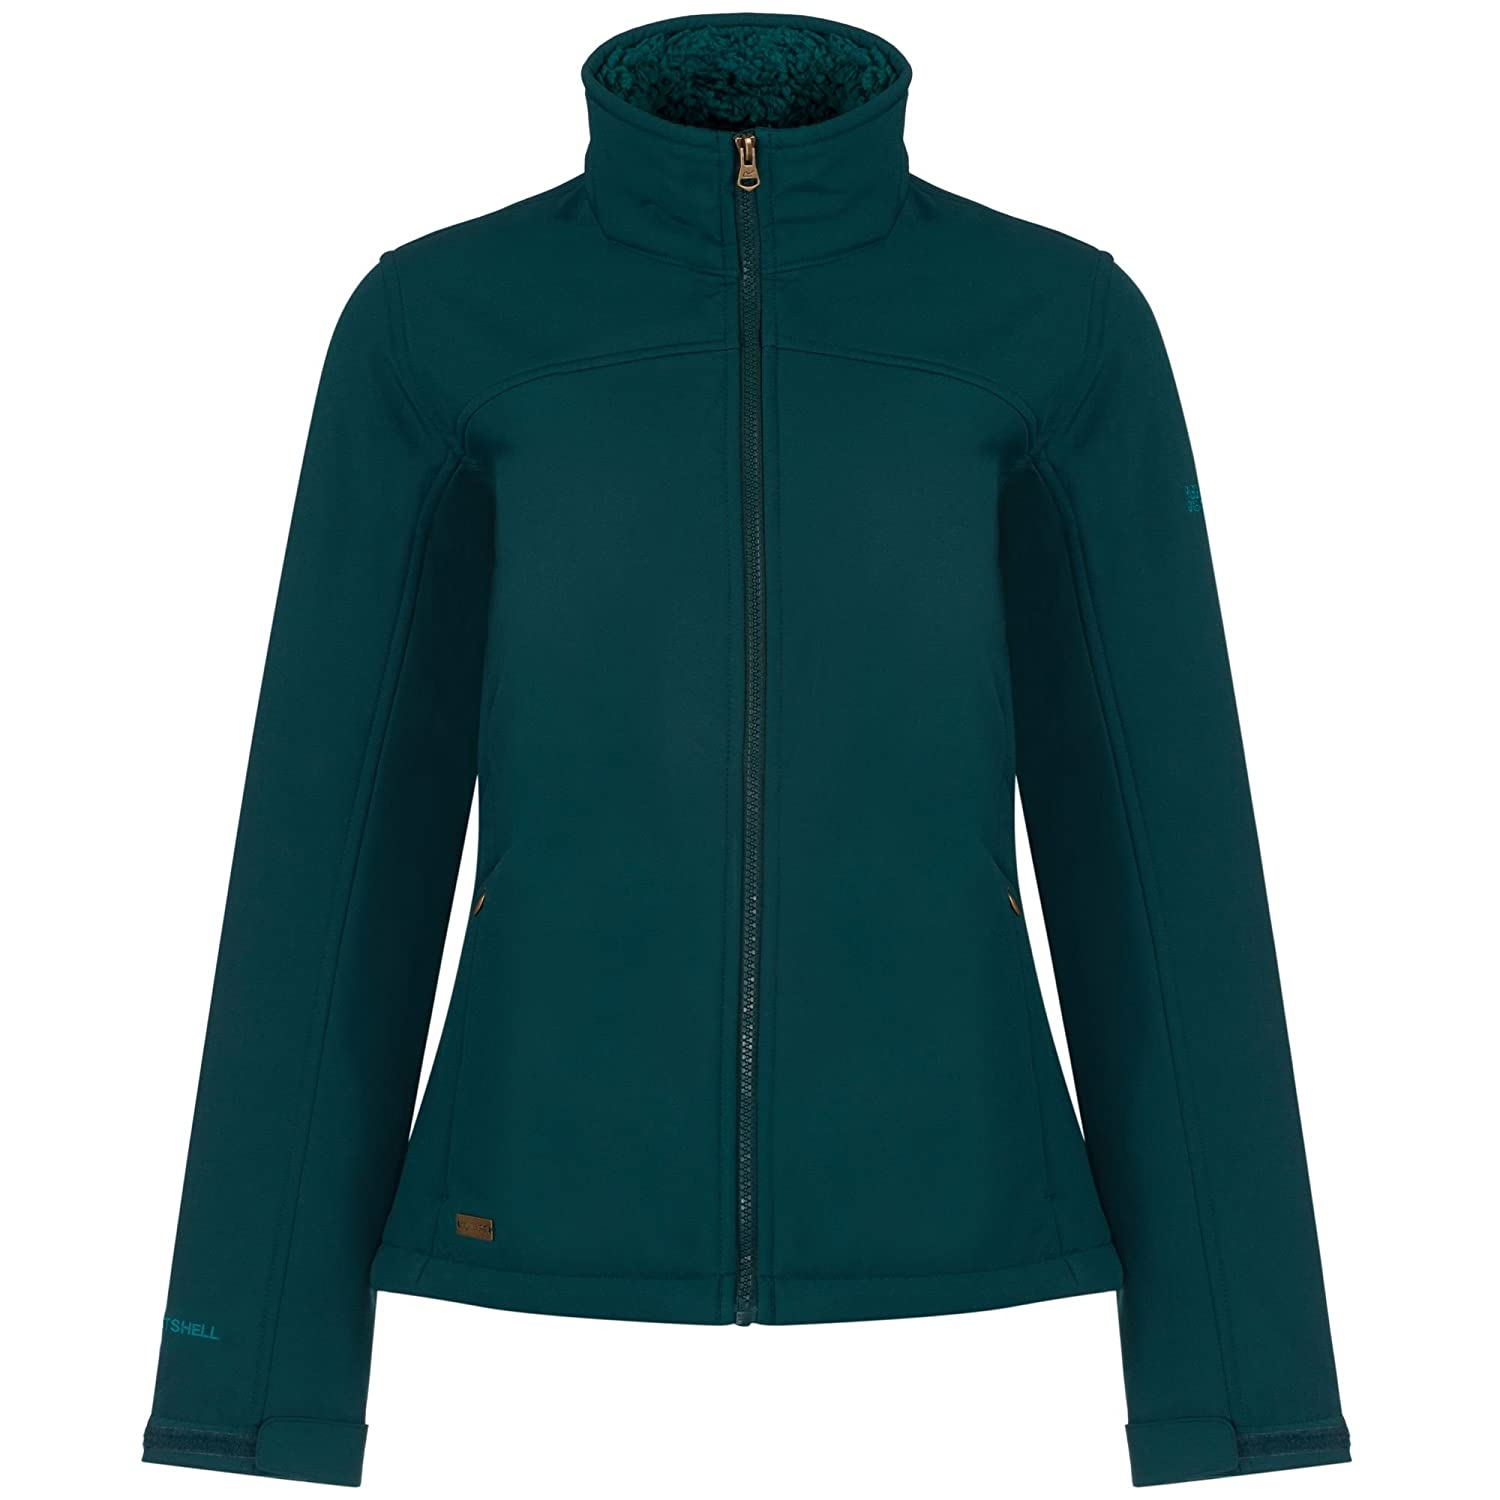 Regatta Womens/Ladies Tulsie Sherpa Backed Windproof Softshell Jacket